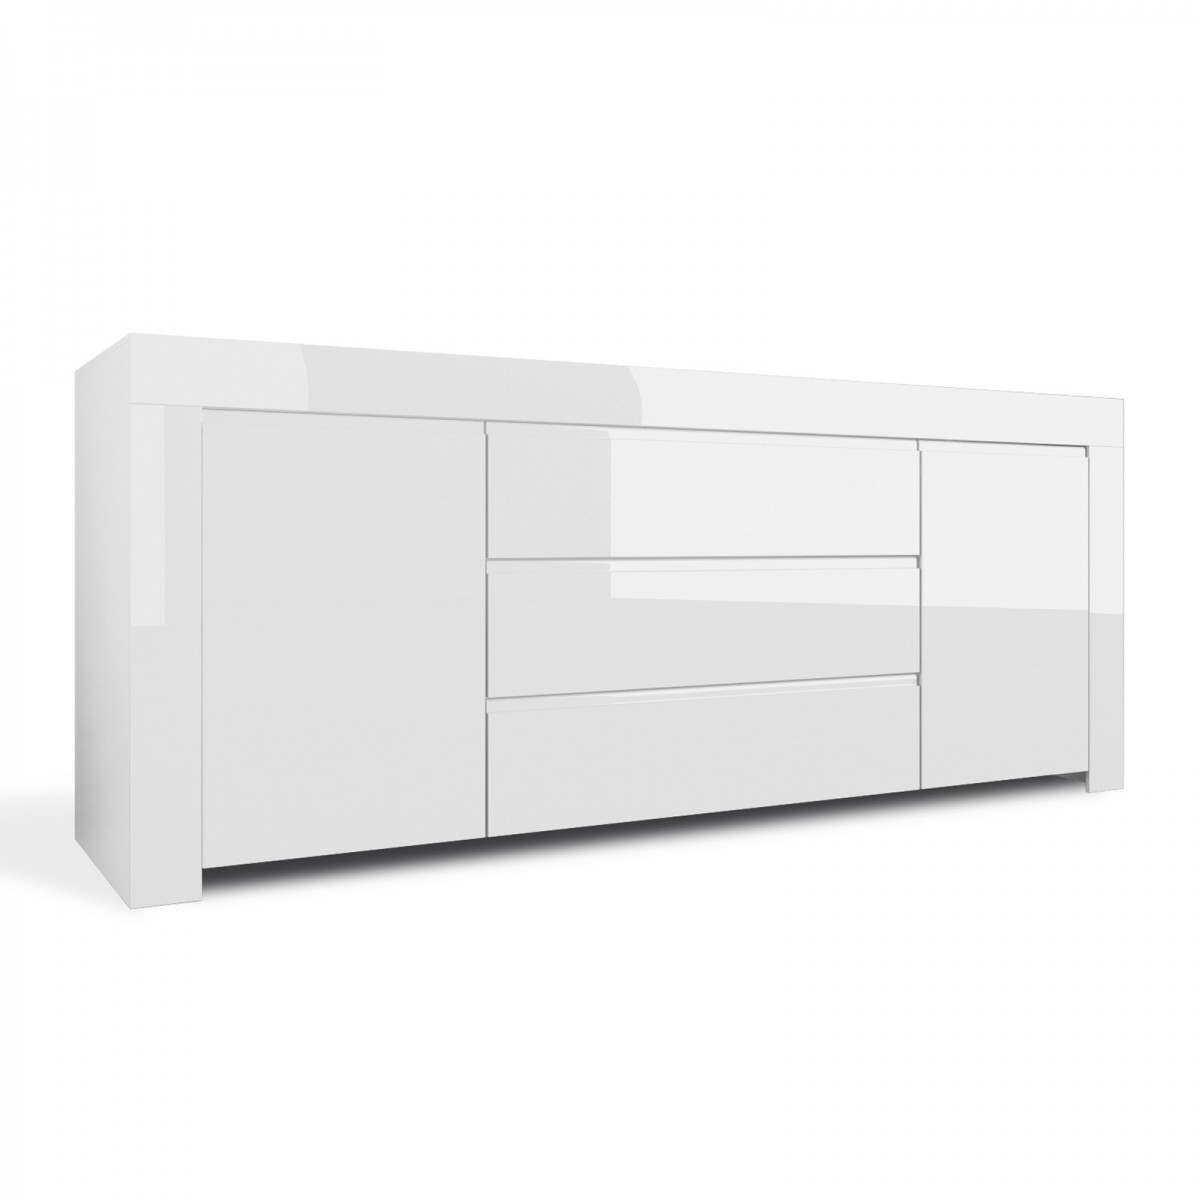 Credenza Made in Italy...